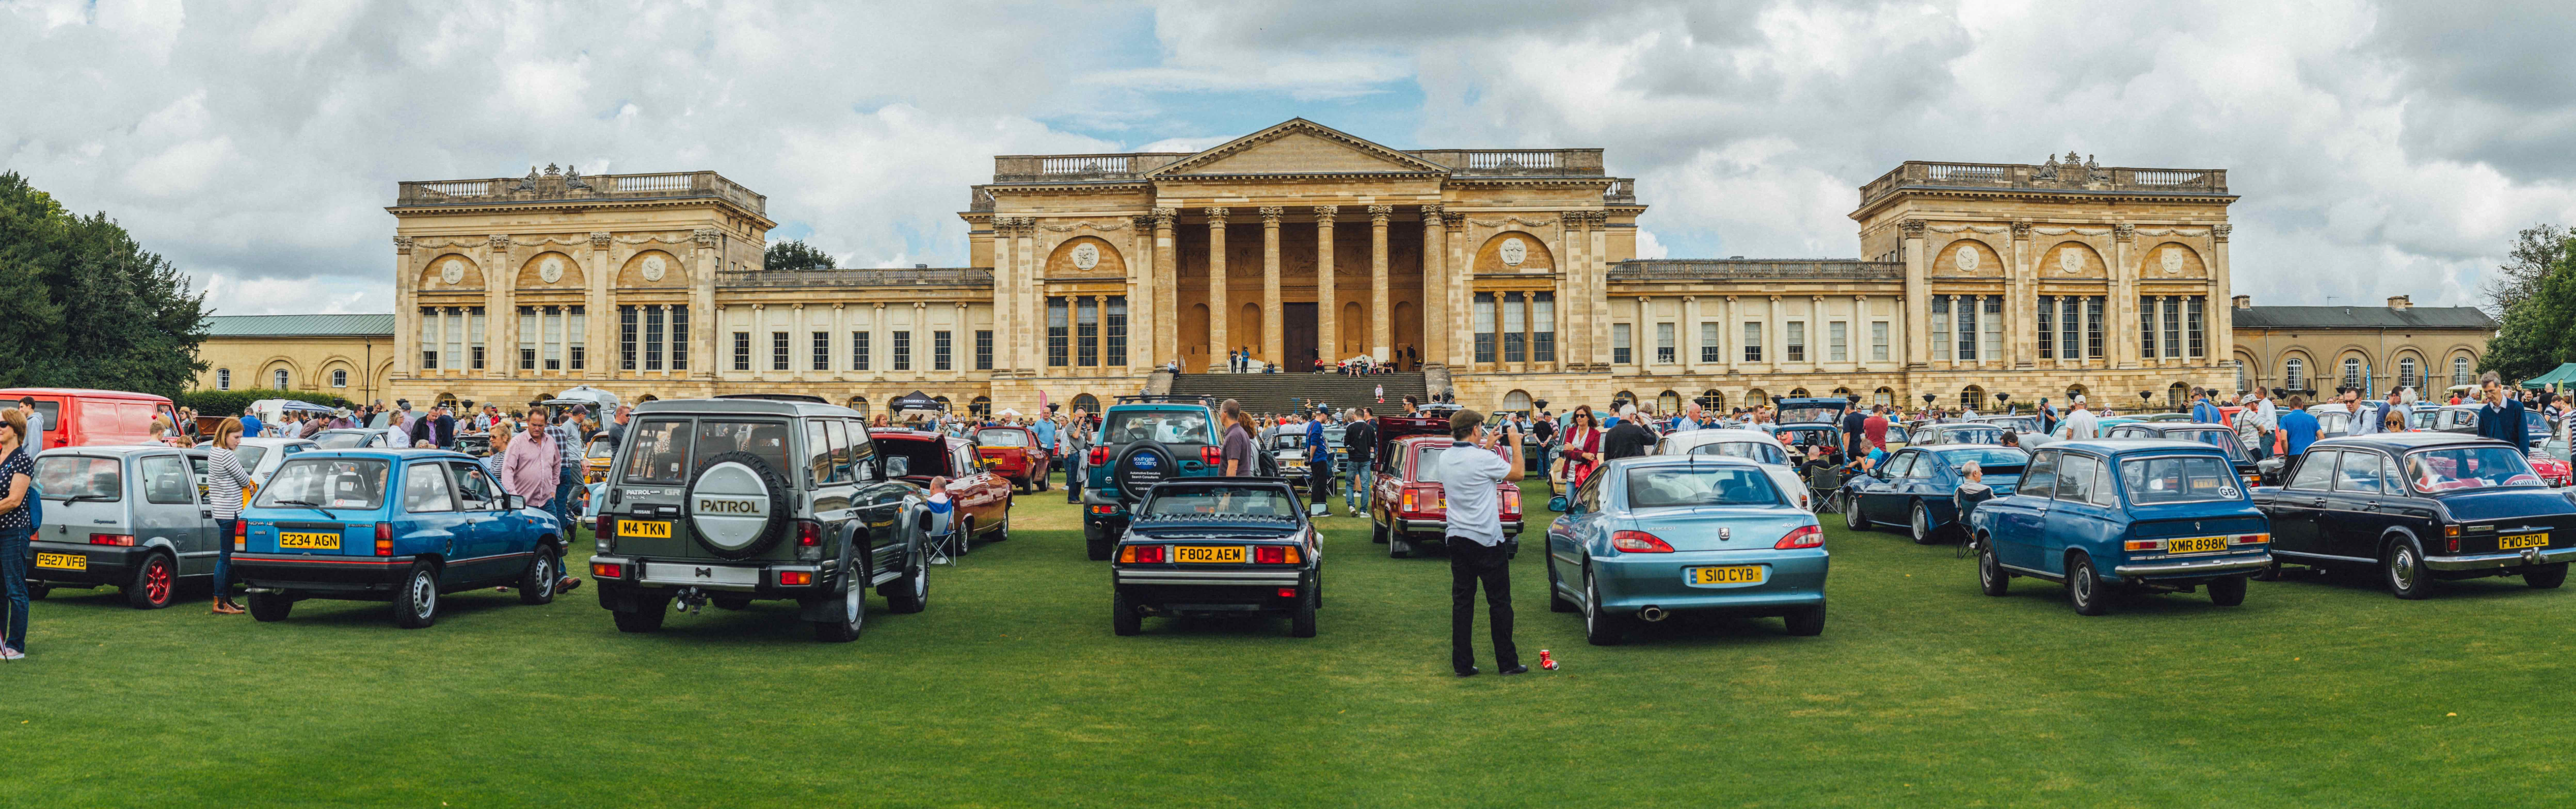 Stowe House is in juxtaposition with 'ordinary' automobiles | Haggerty International photos